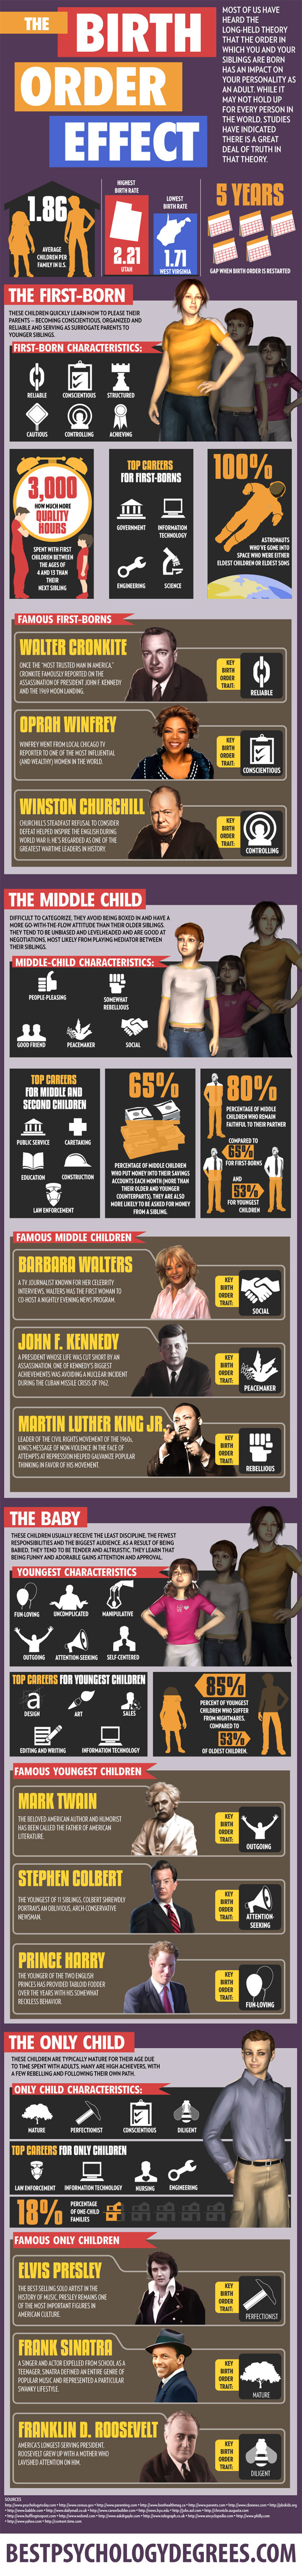 Impact of Birth Order on Personality-Infographic